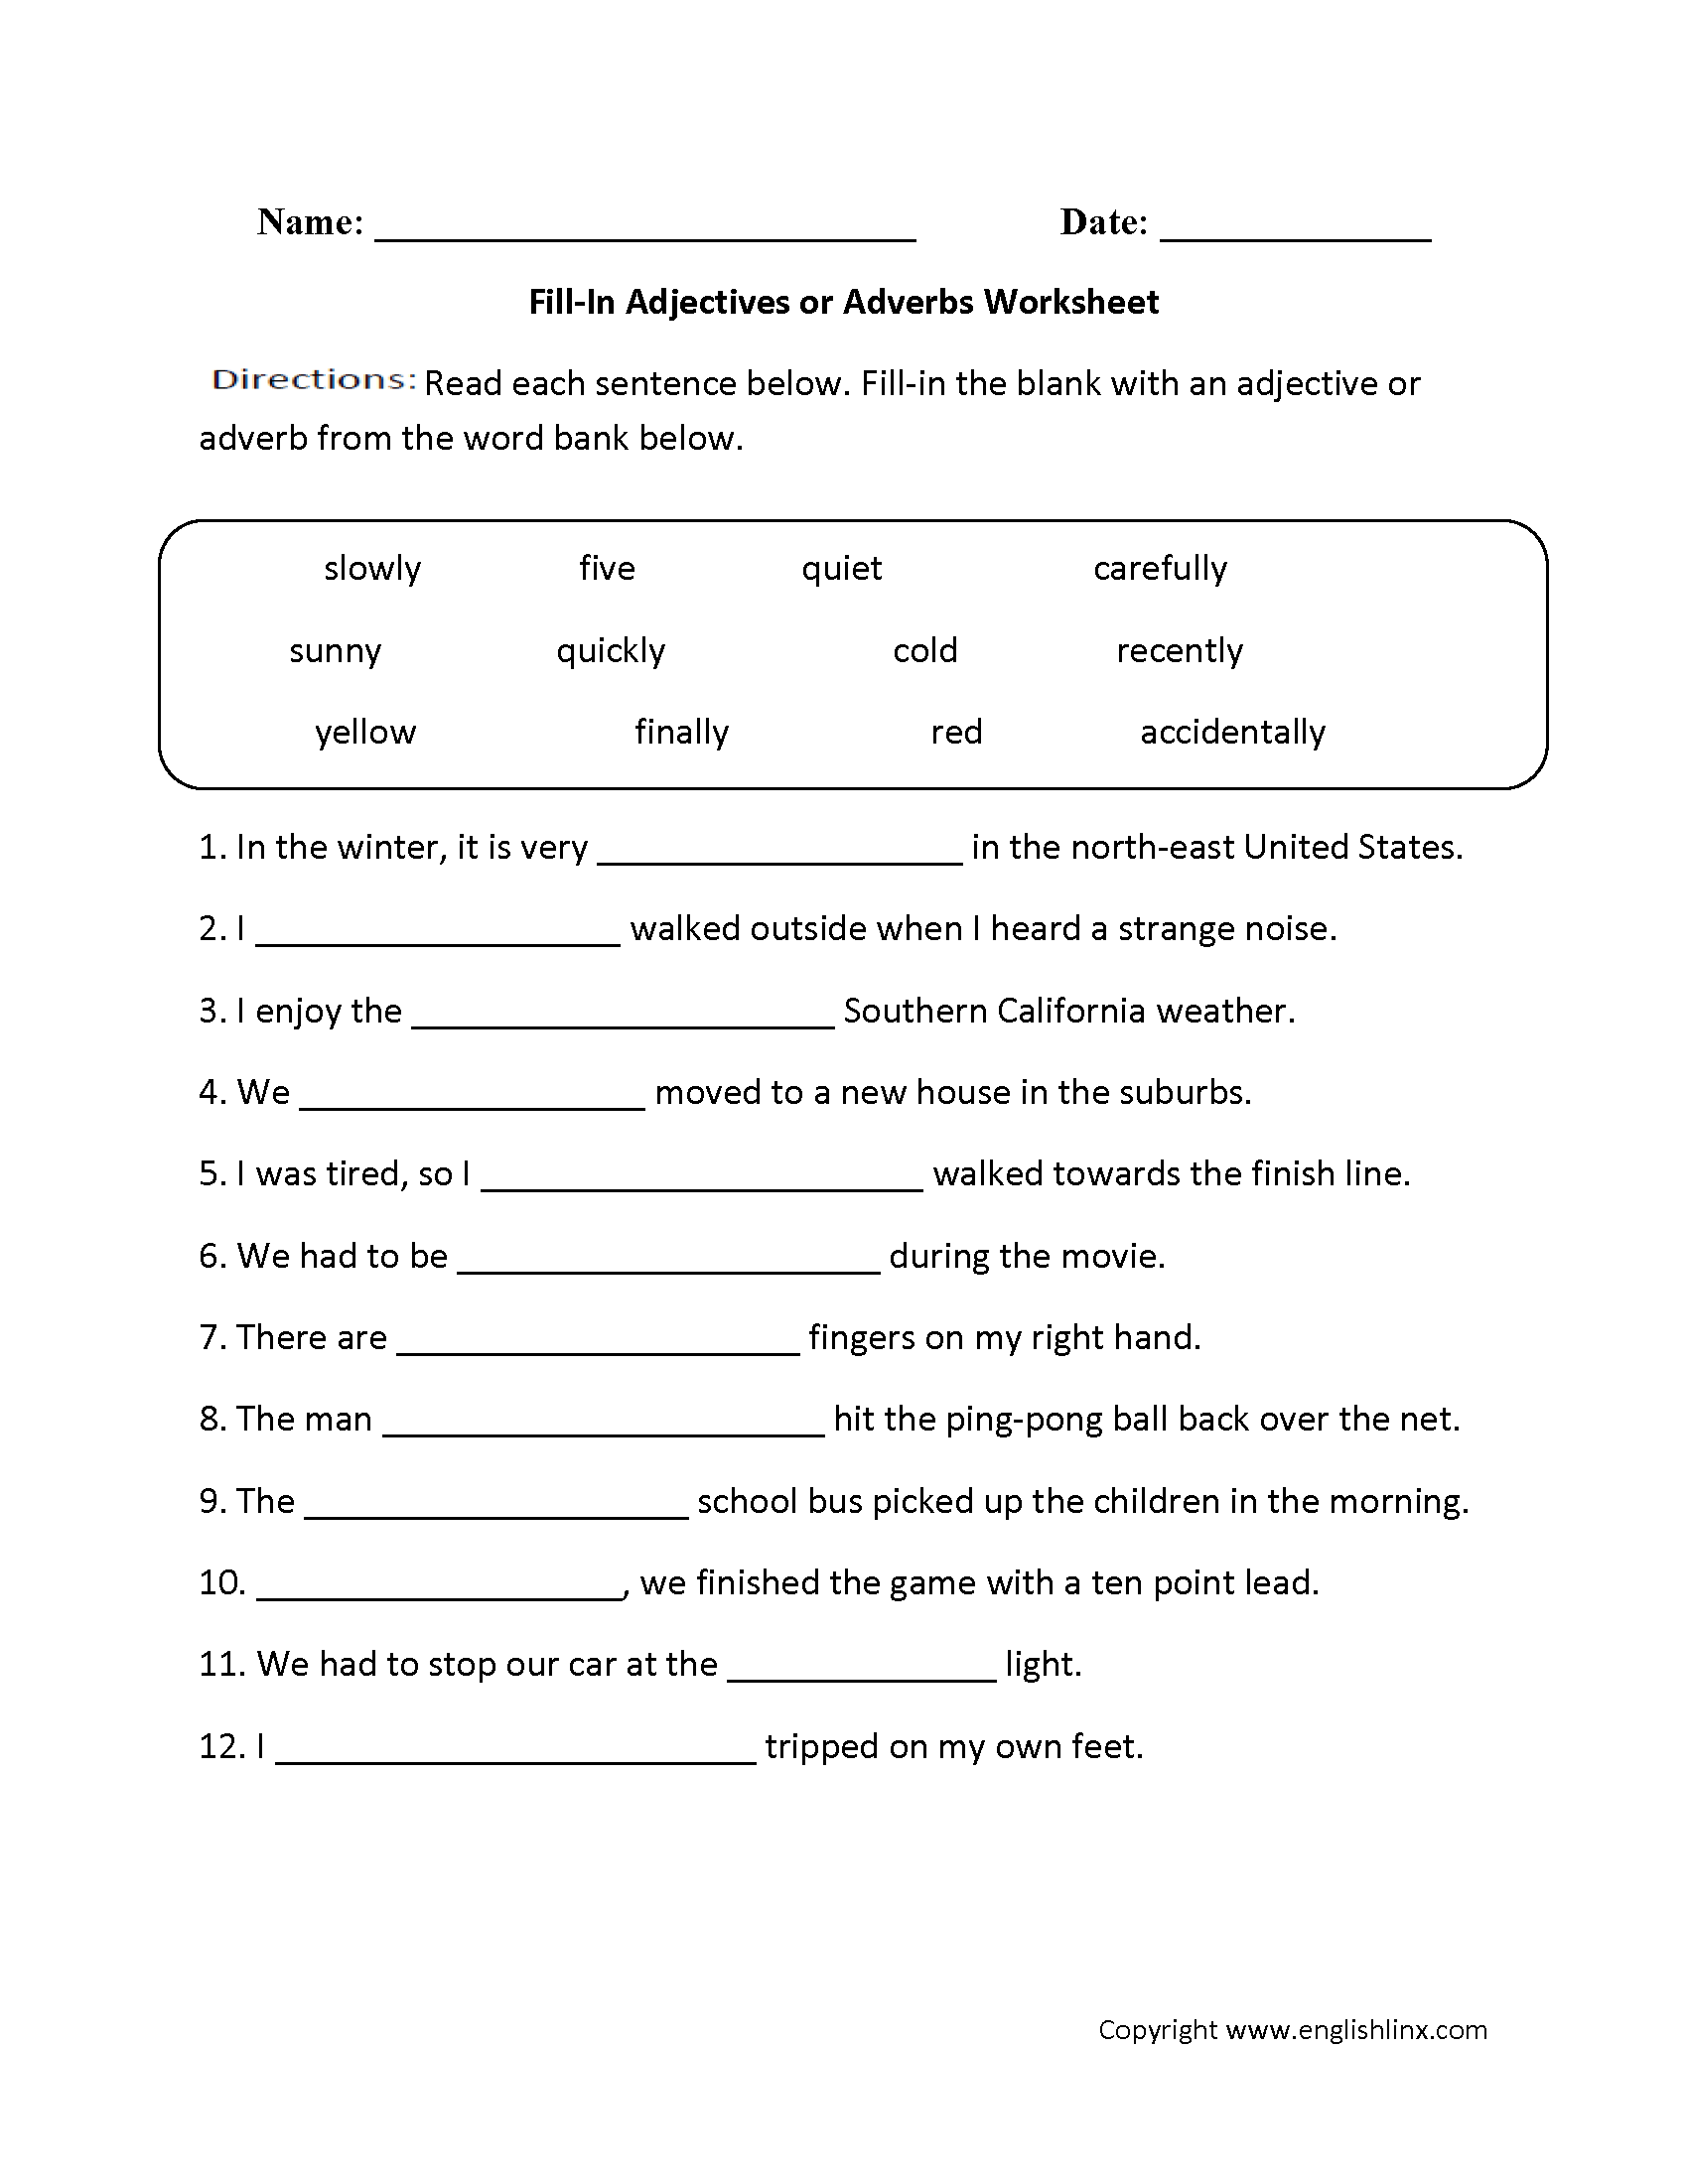 Adjectives Worksheets For Grade 2 - ora-exacta.co